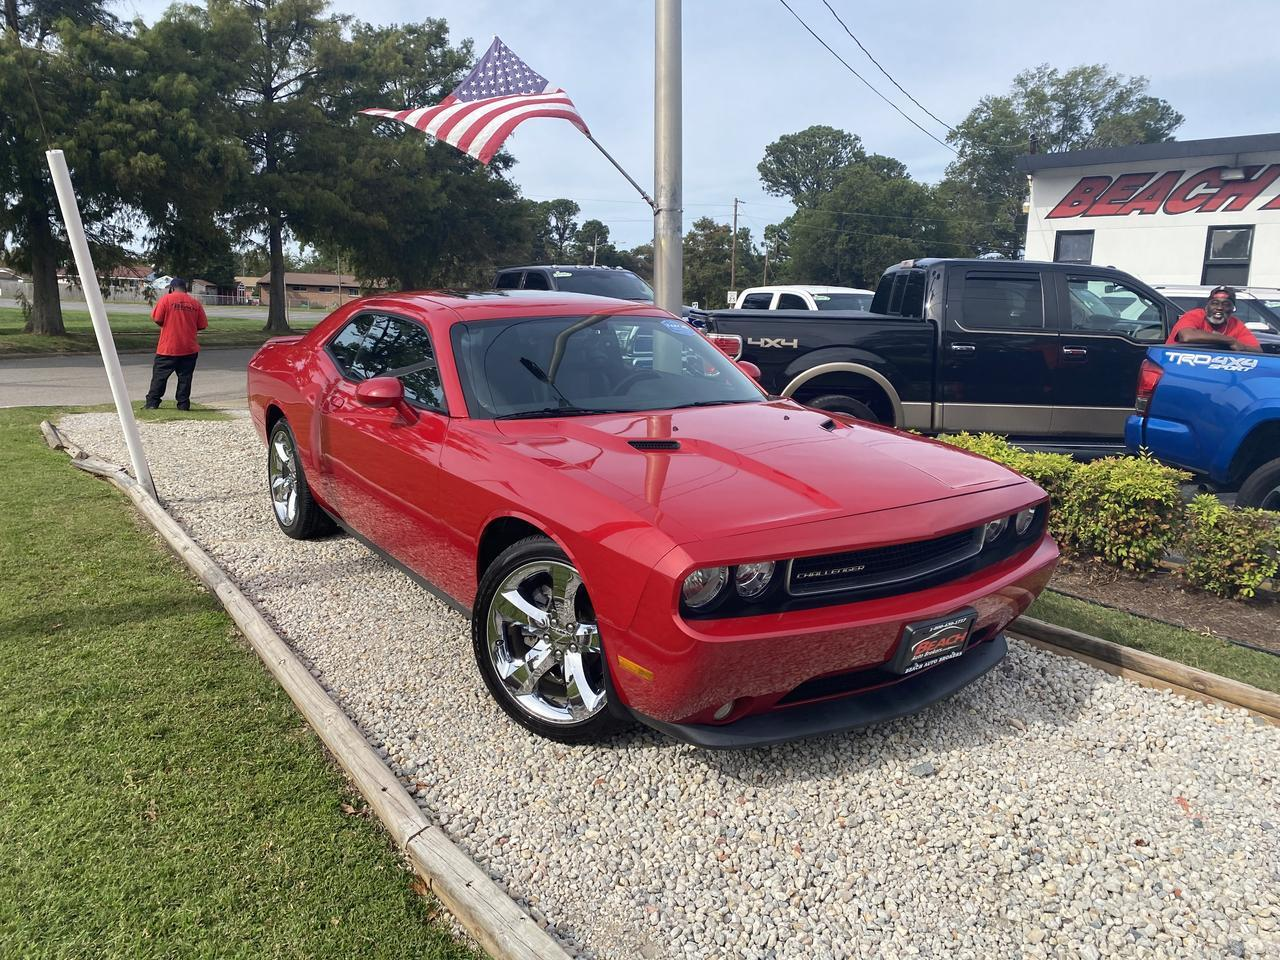 2013 DODGE CHALLENGER SXT PLUS, WARRANTY, LEATHER, SUNROOF, HEATED SEATS, ONLY 27K MILES, BUY NOW BELOW DEALER COST!!! Norfolk VA